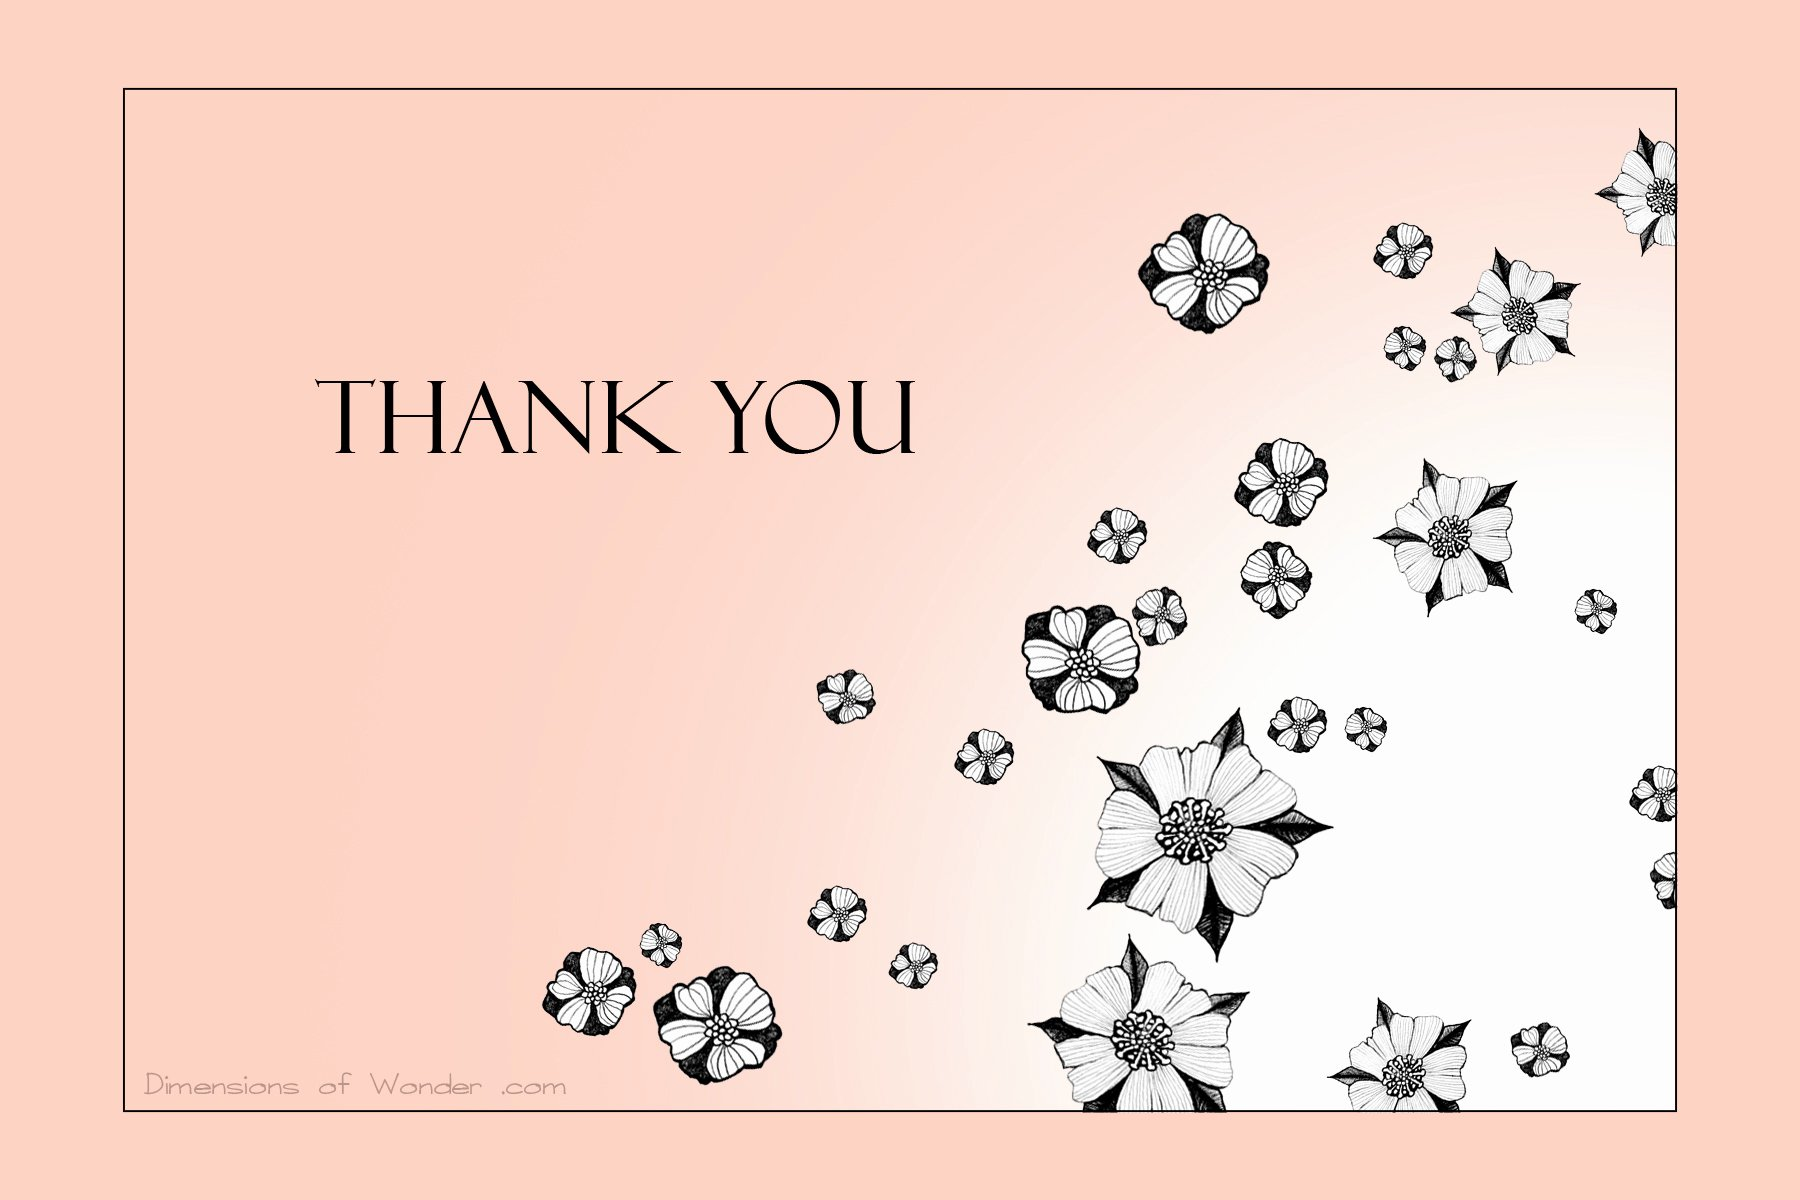 Thank You Postcard Template New Thank You Card Template for Word Portablegasgrillweber